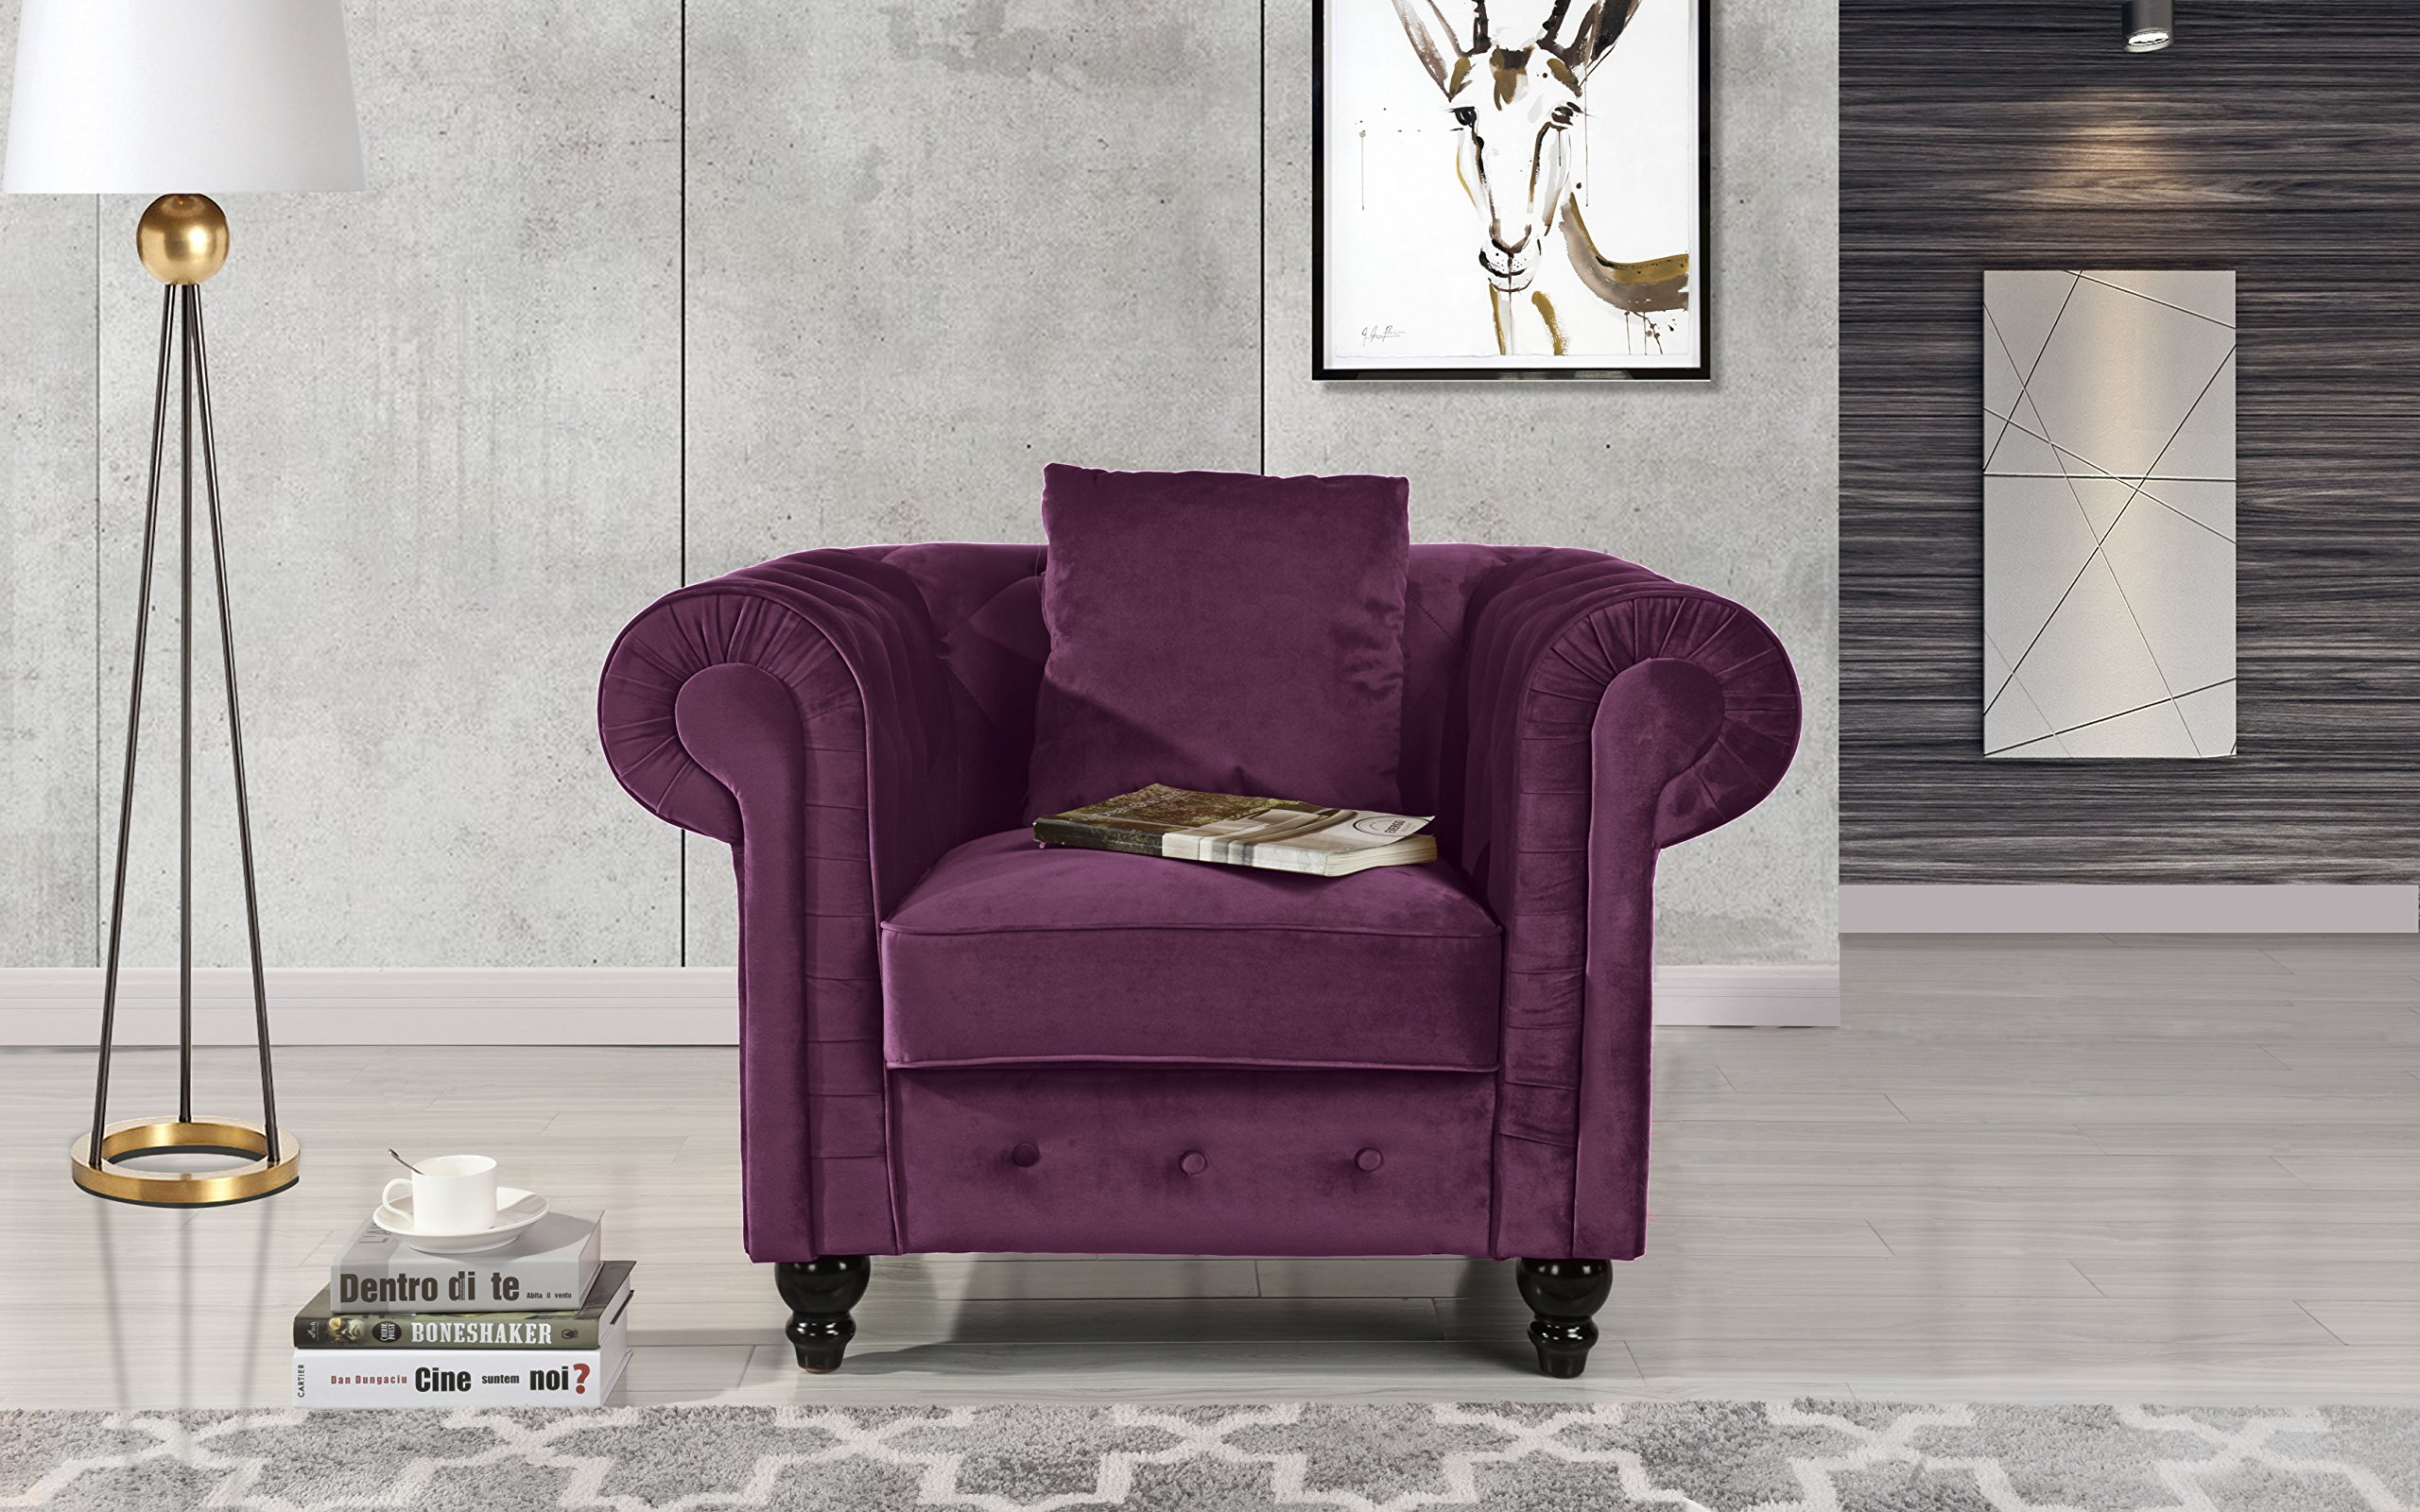 Classic Scroll Arm Large Velvet Living Room Chesterfield Accent Chair (Purple) - Ultra soft and comfortable chesterfield style large accent chair with tufted design for that classic and sophisticated look Premium velvet upholstery with overstuffed arms and back rests for comfort, tufted plush arm rests Includes decorative pillow and features victorian style dark wooden legs. - living-room-furniture, living-room, accent-chairs - 916IiTGGjZL -